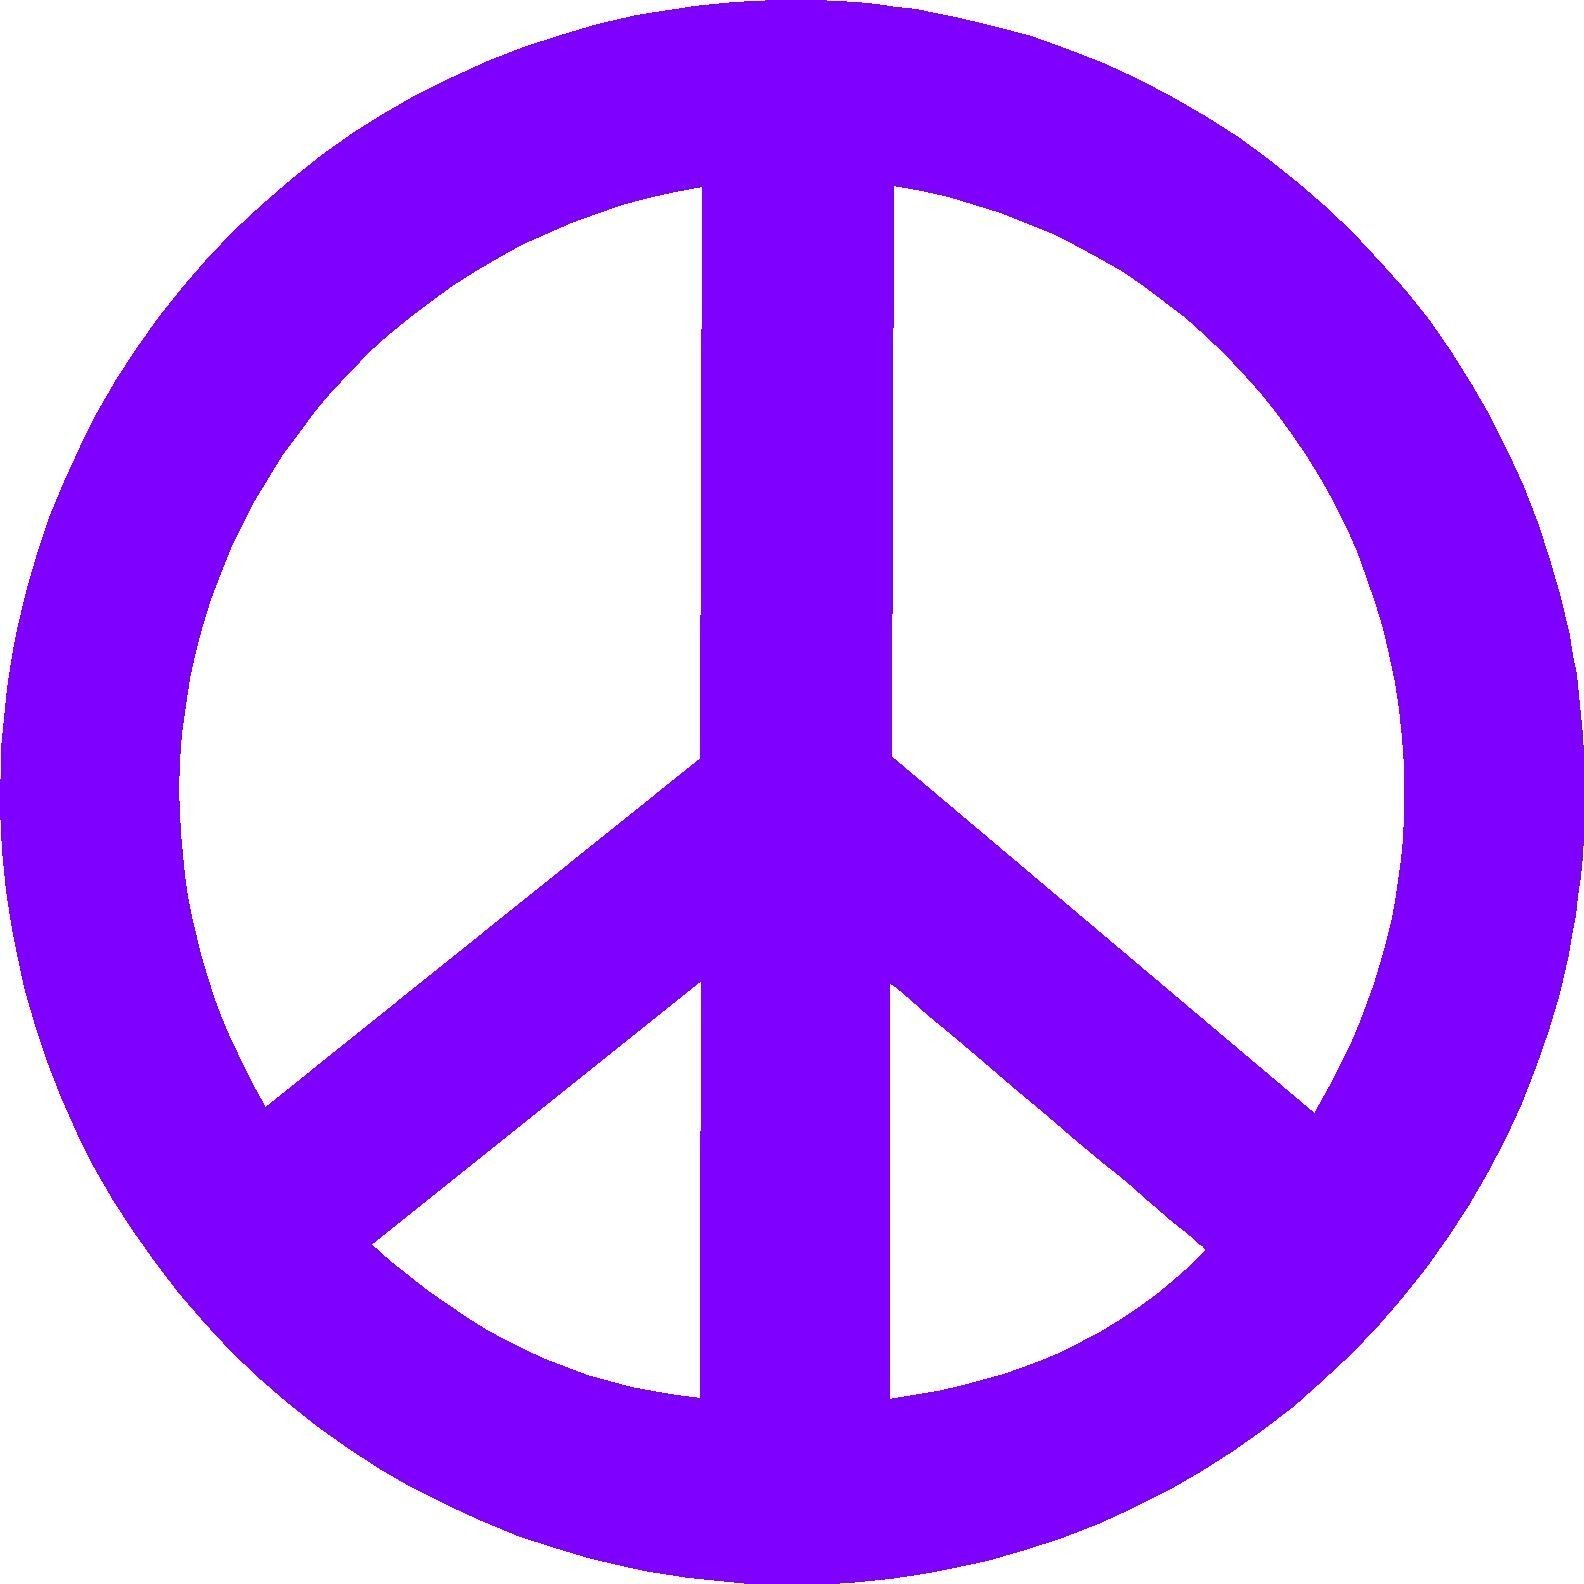 Hippie Peace Sign - ClipArt Best